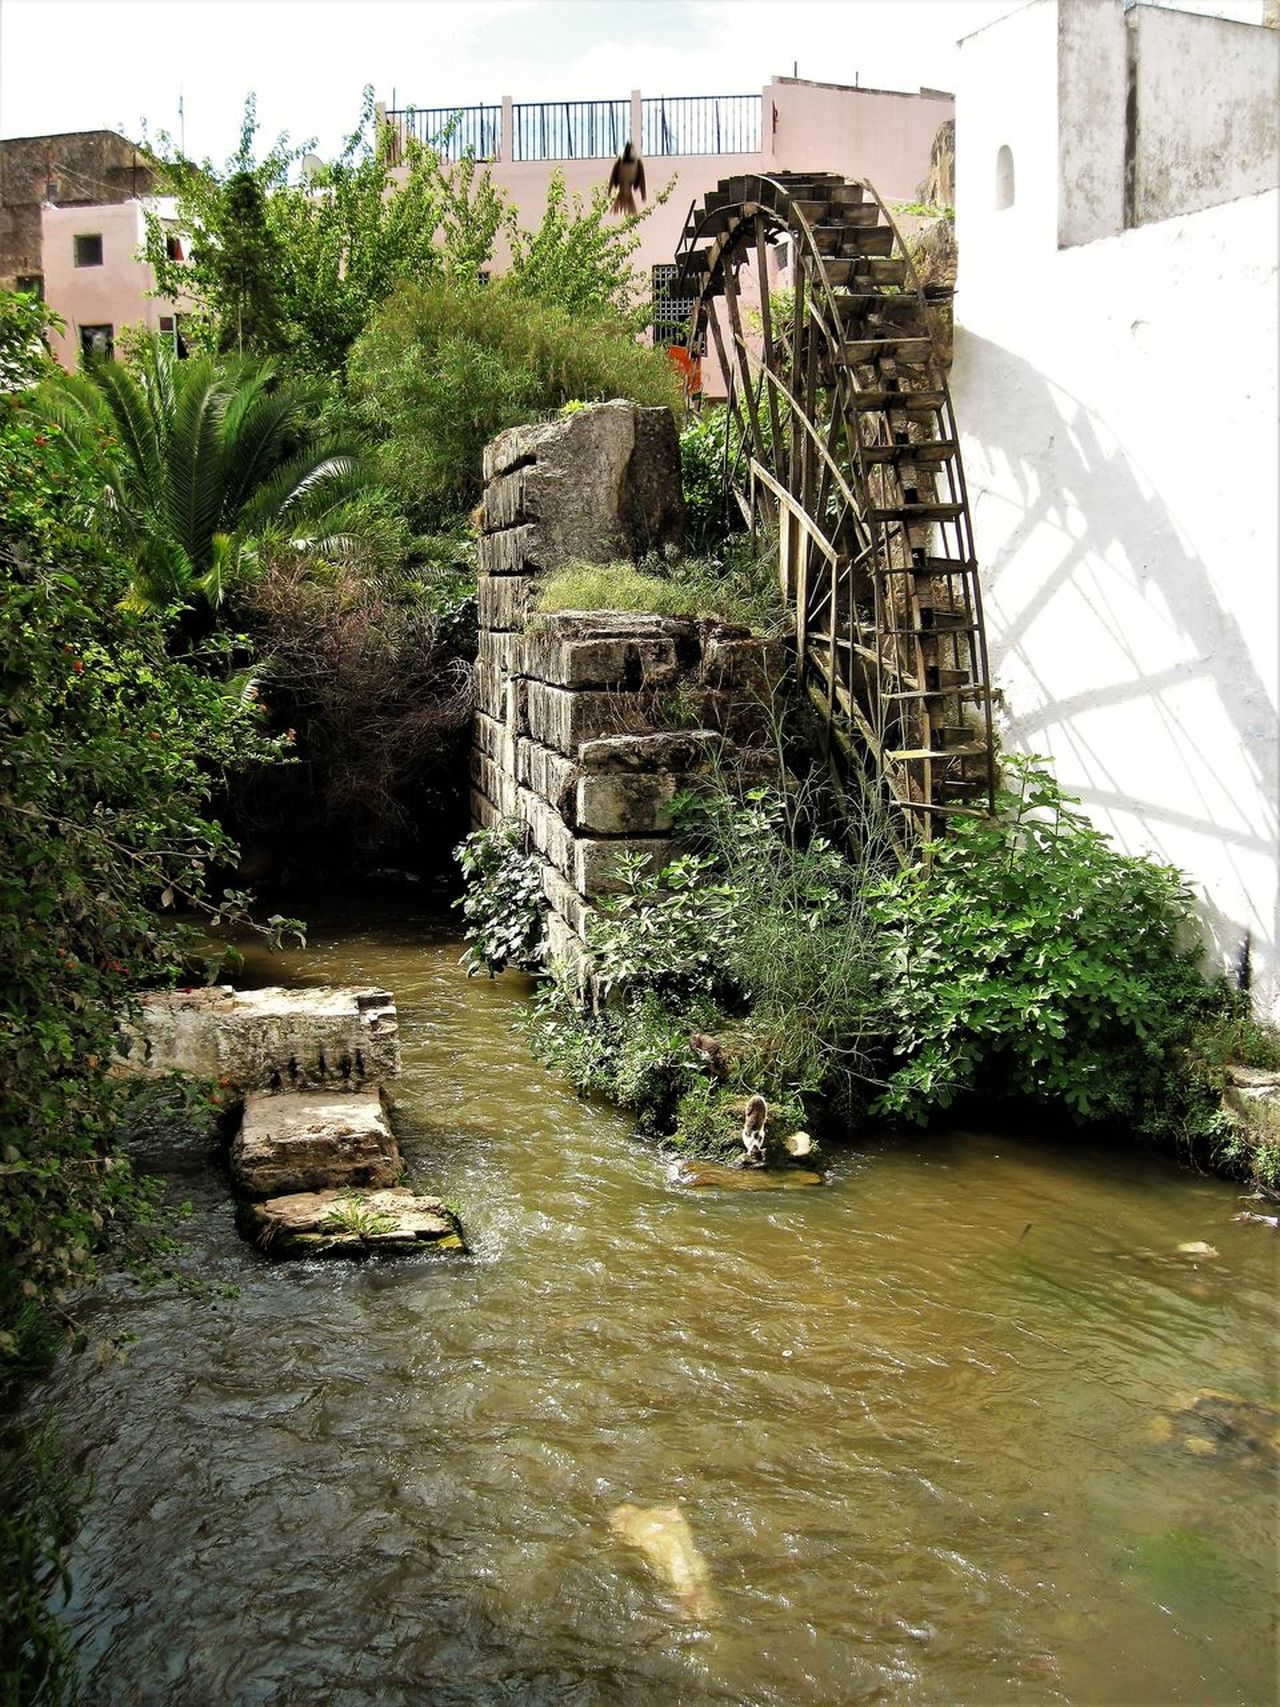 Architecture Building Exterior Built Structure Day Grass Nature No People Outdoors Sky Tree Water Water Wheel Watermill